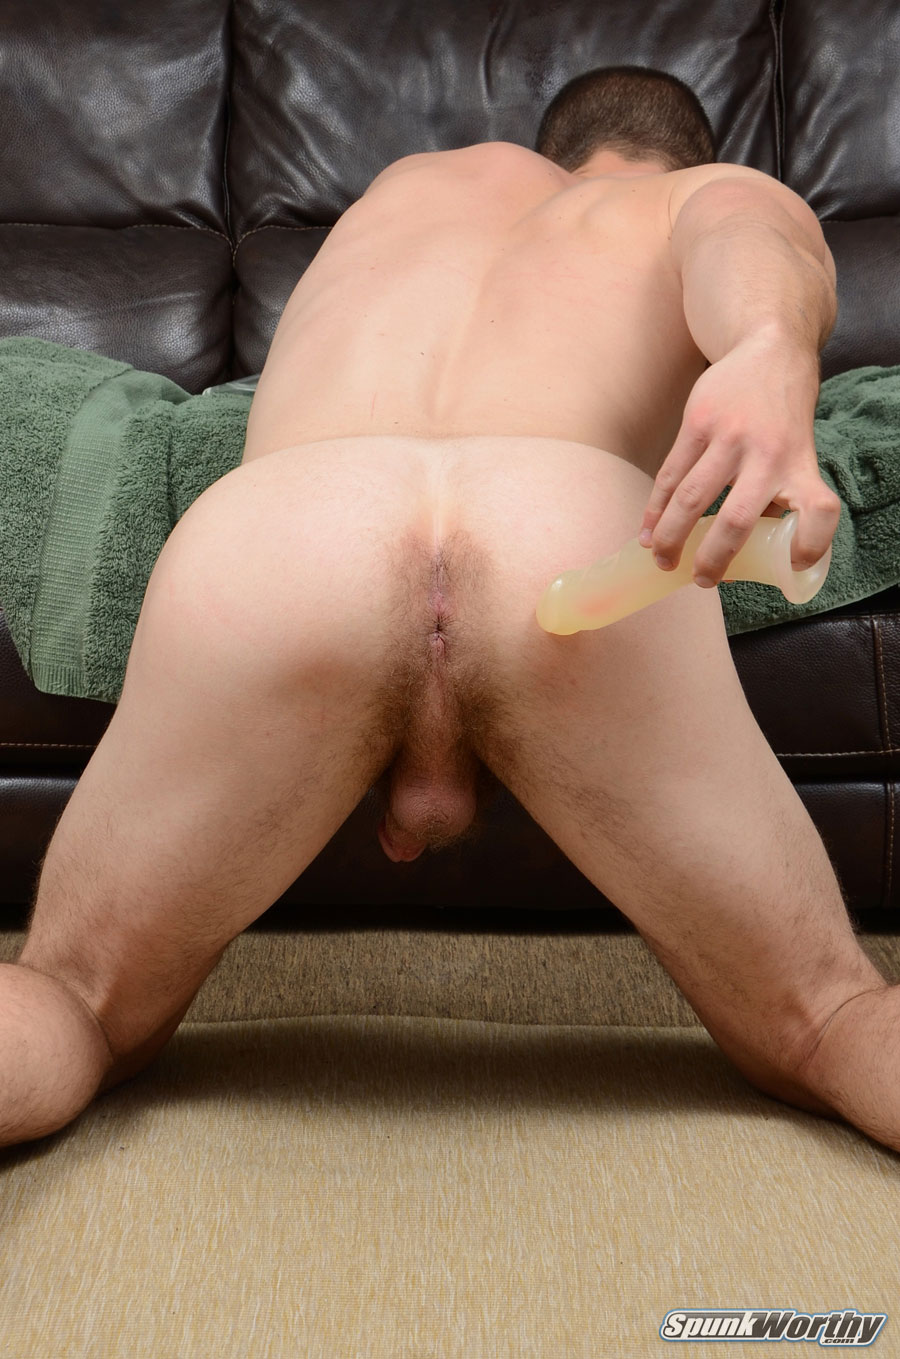 SpunkWorthy-Dean-Straight-Marine-Uses-A-Dildo-On-Hairy-Ass-Amateur-Gay-Porn-09 Ripped Marine Fucks His Straight Hairy Ass With A Dildo